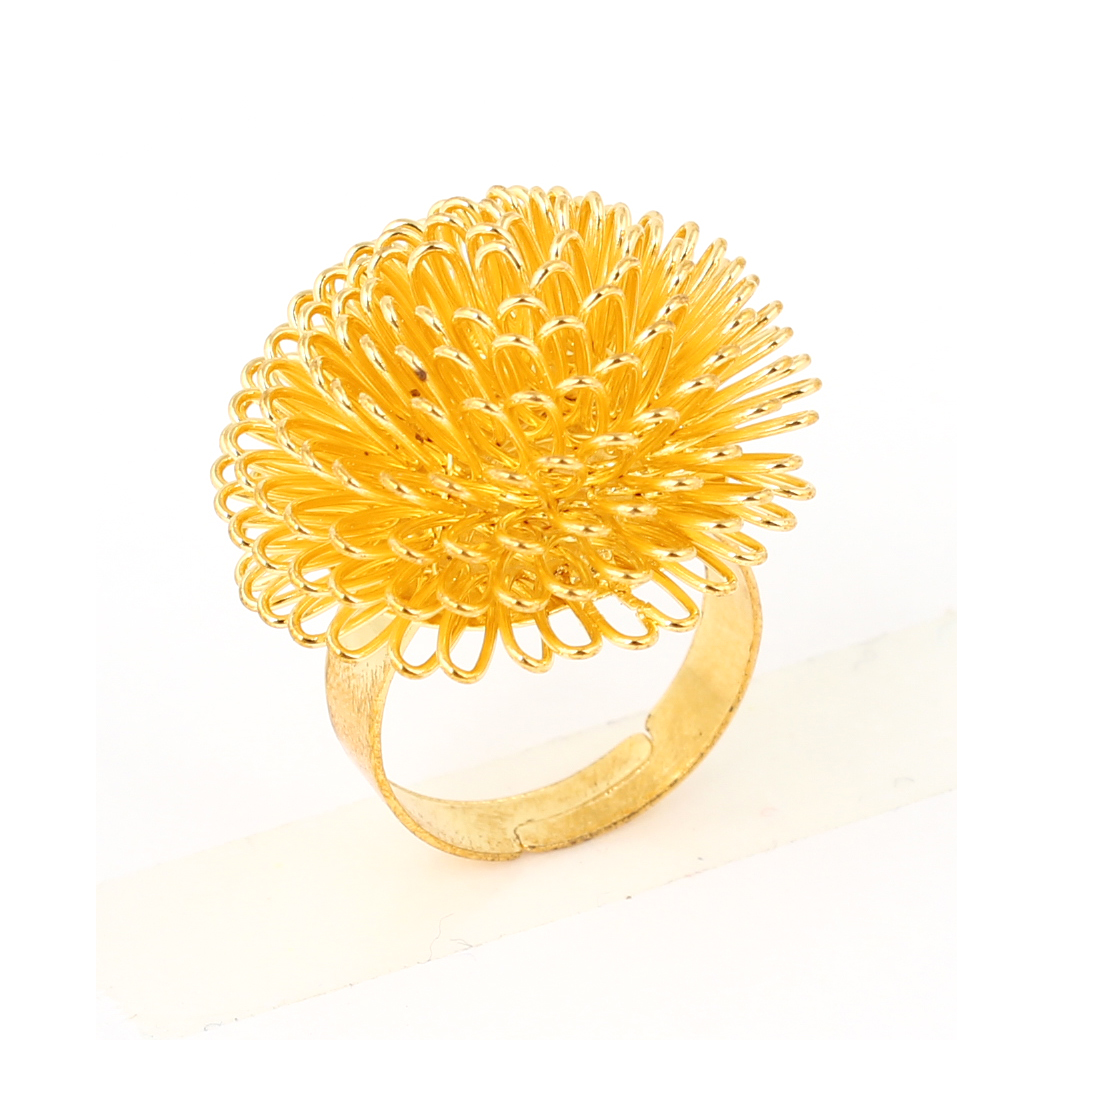 Decorative Gold Tone Dandelion Flower Metal Finger Ring US Size 7 1/2 for Lady